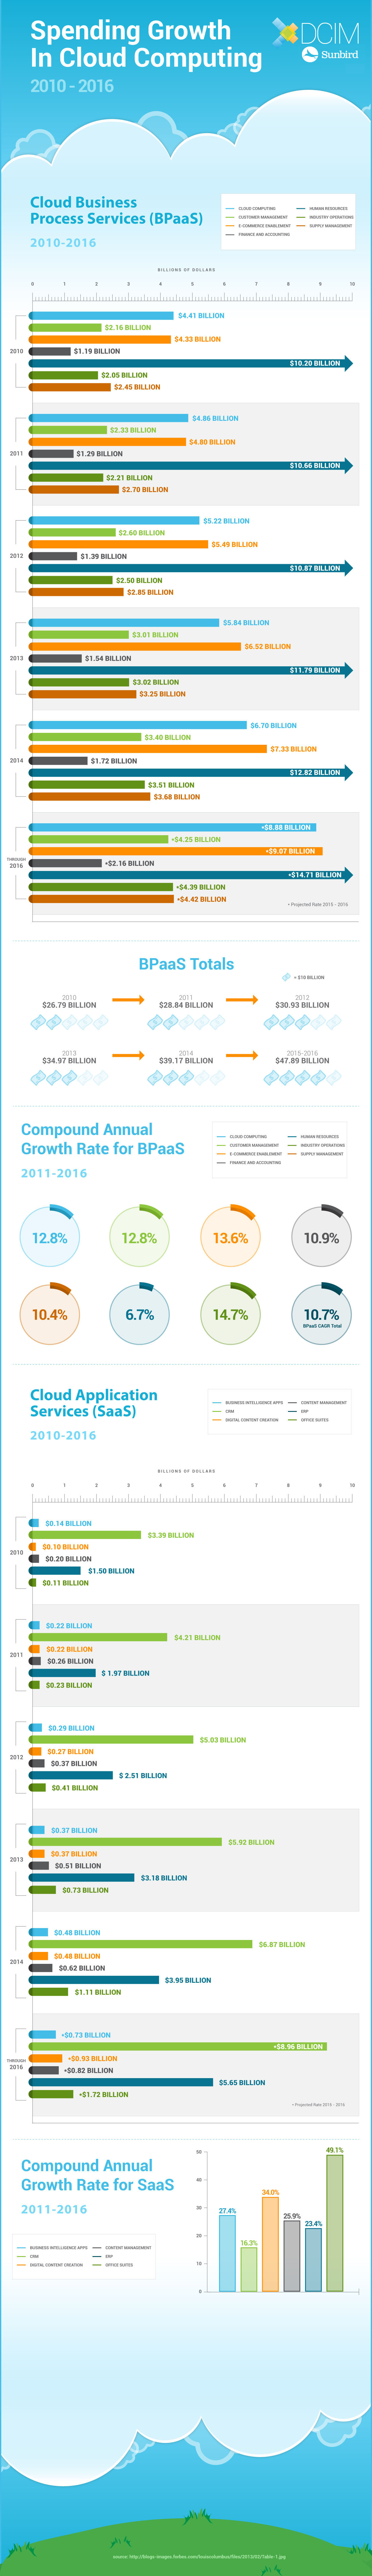 Infographic Spend Growth in Cloud Computing by Sunbird